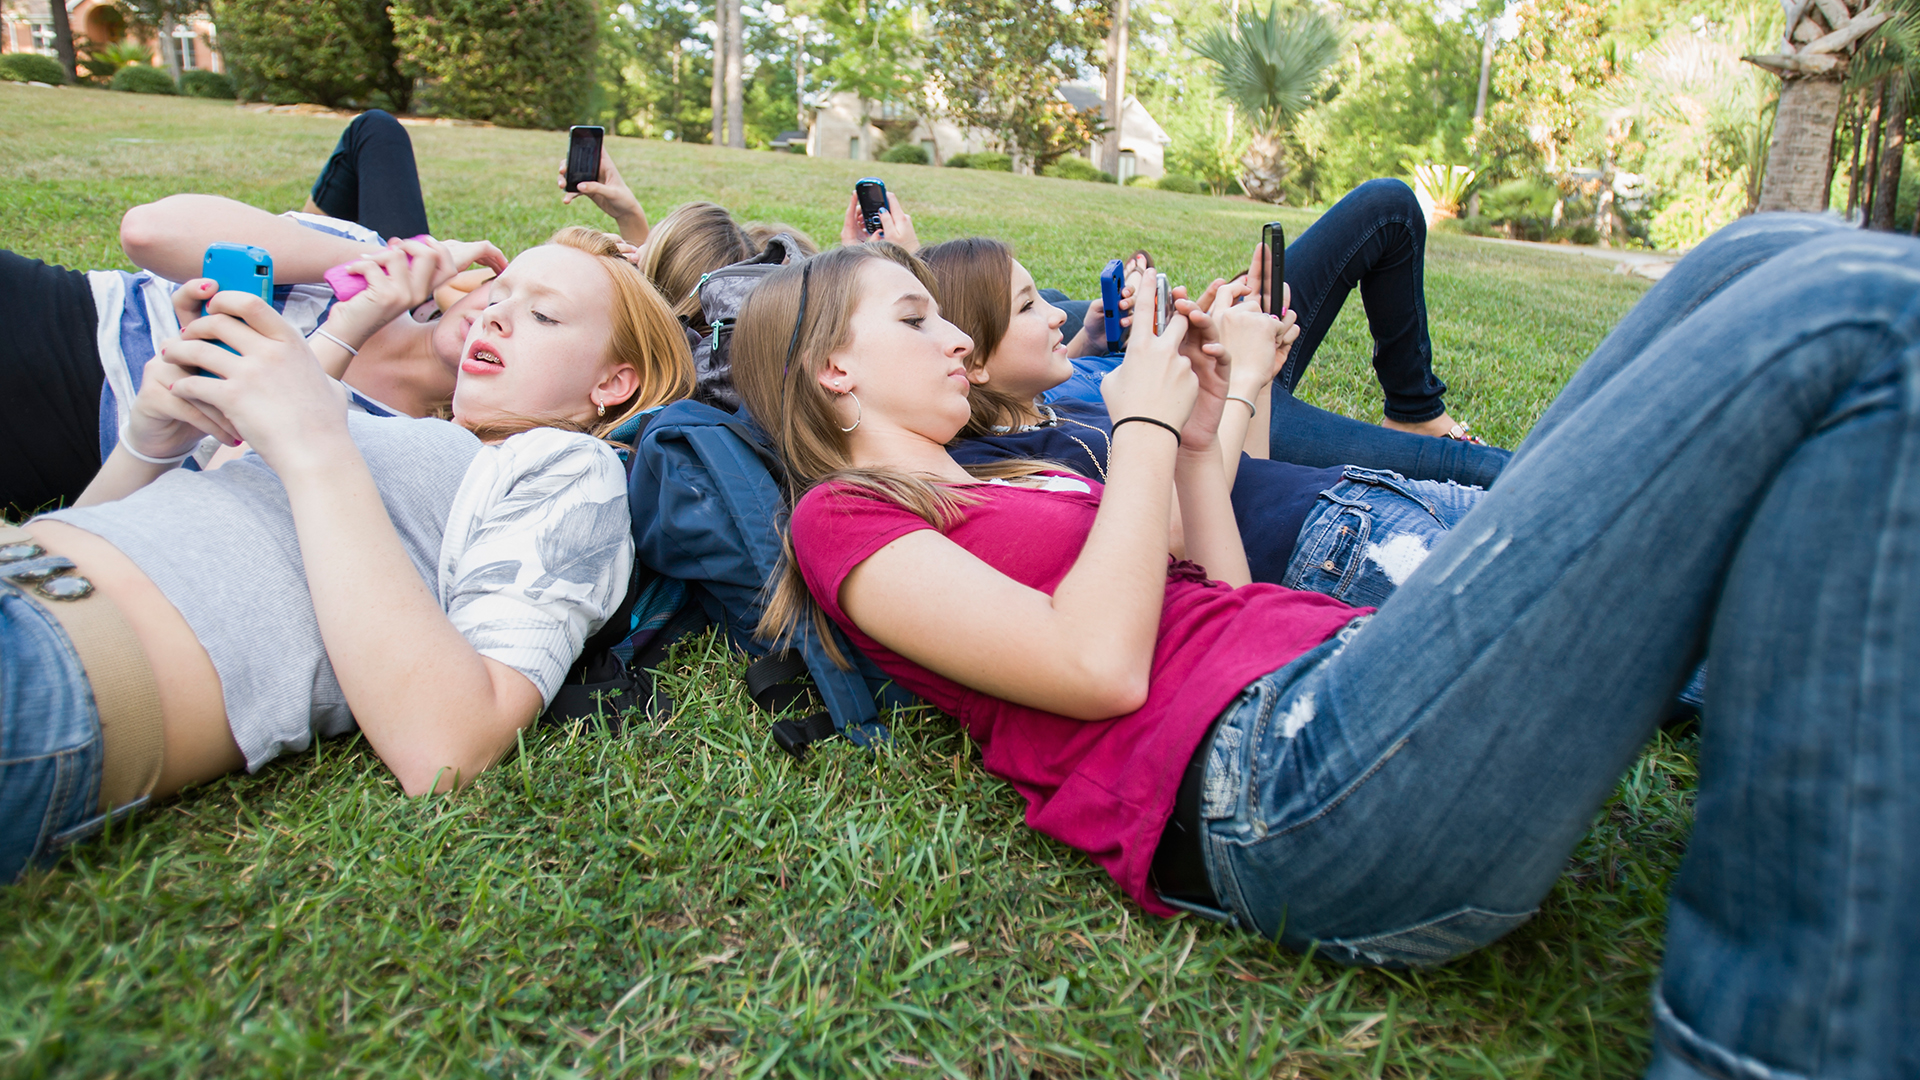 teen, teens, text, hang out, gras